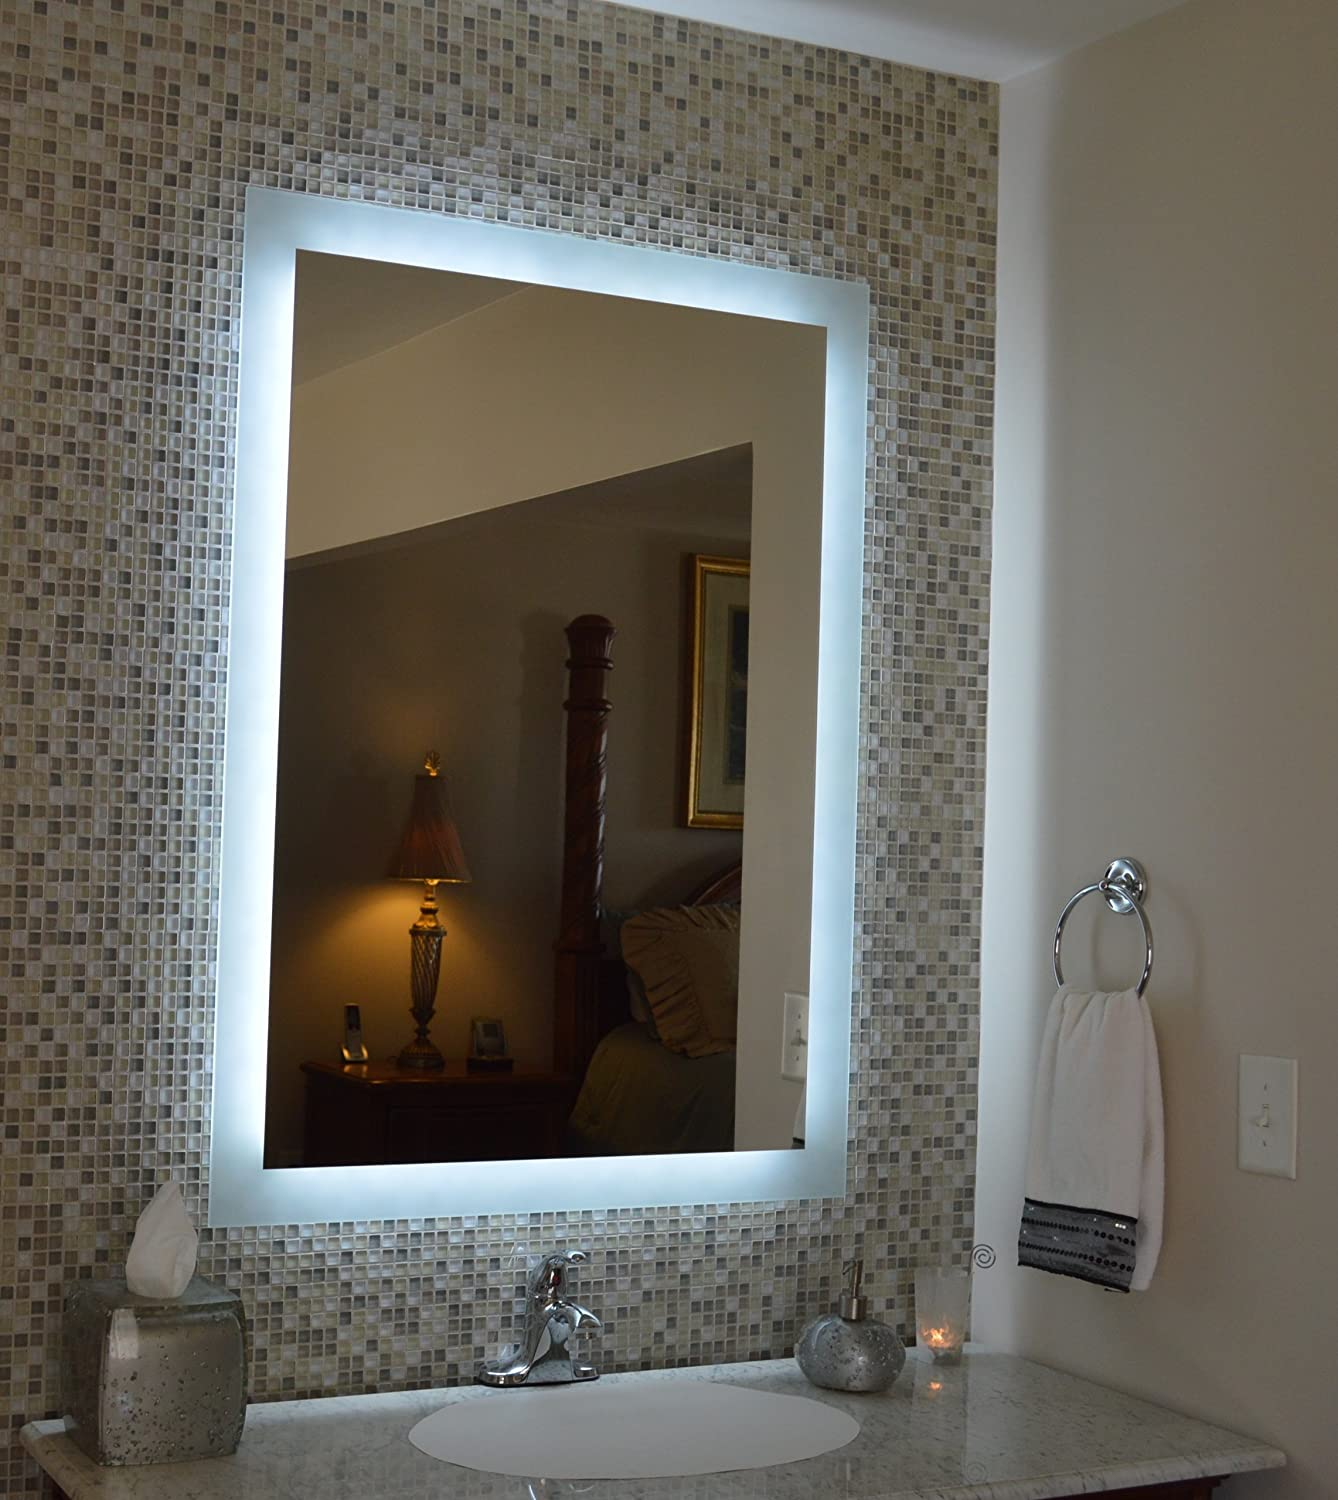 Amazon.com: Wall Mounted Lighted Vanity Mirror MAM92840 28: Home ...